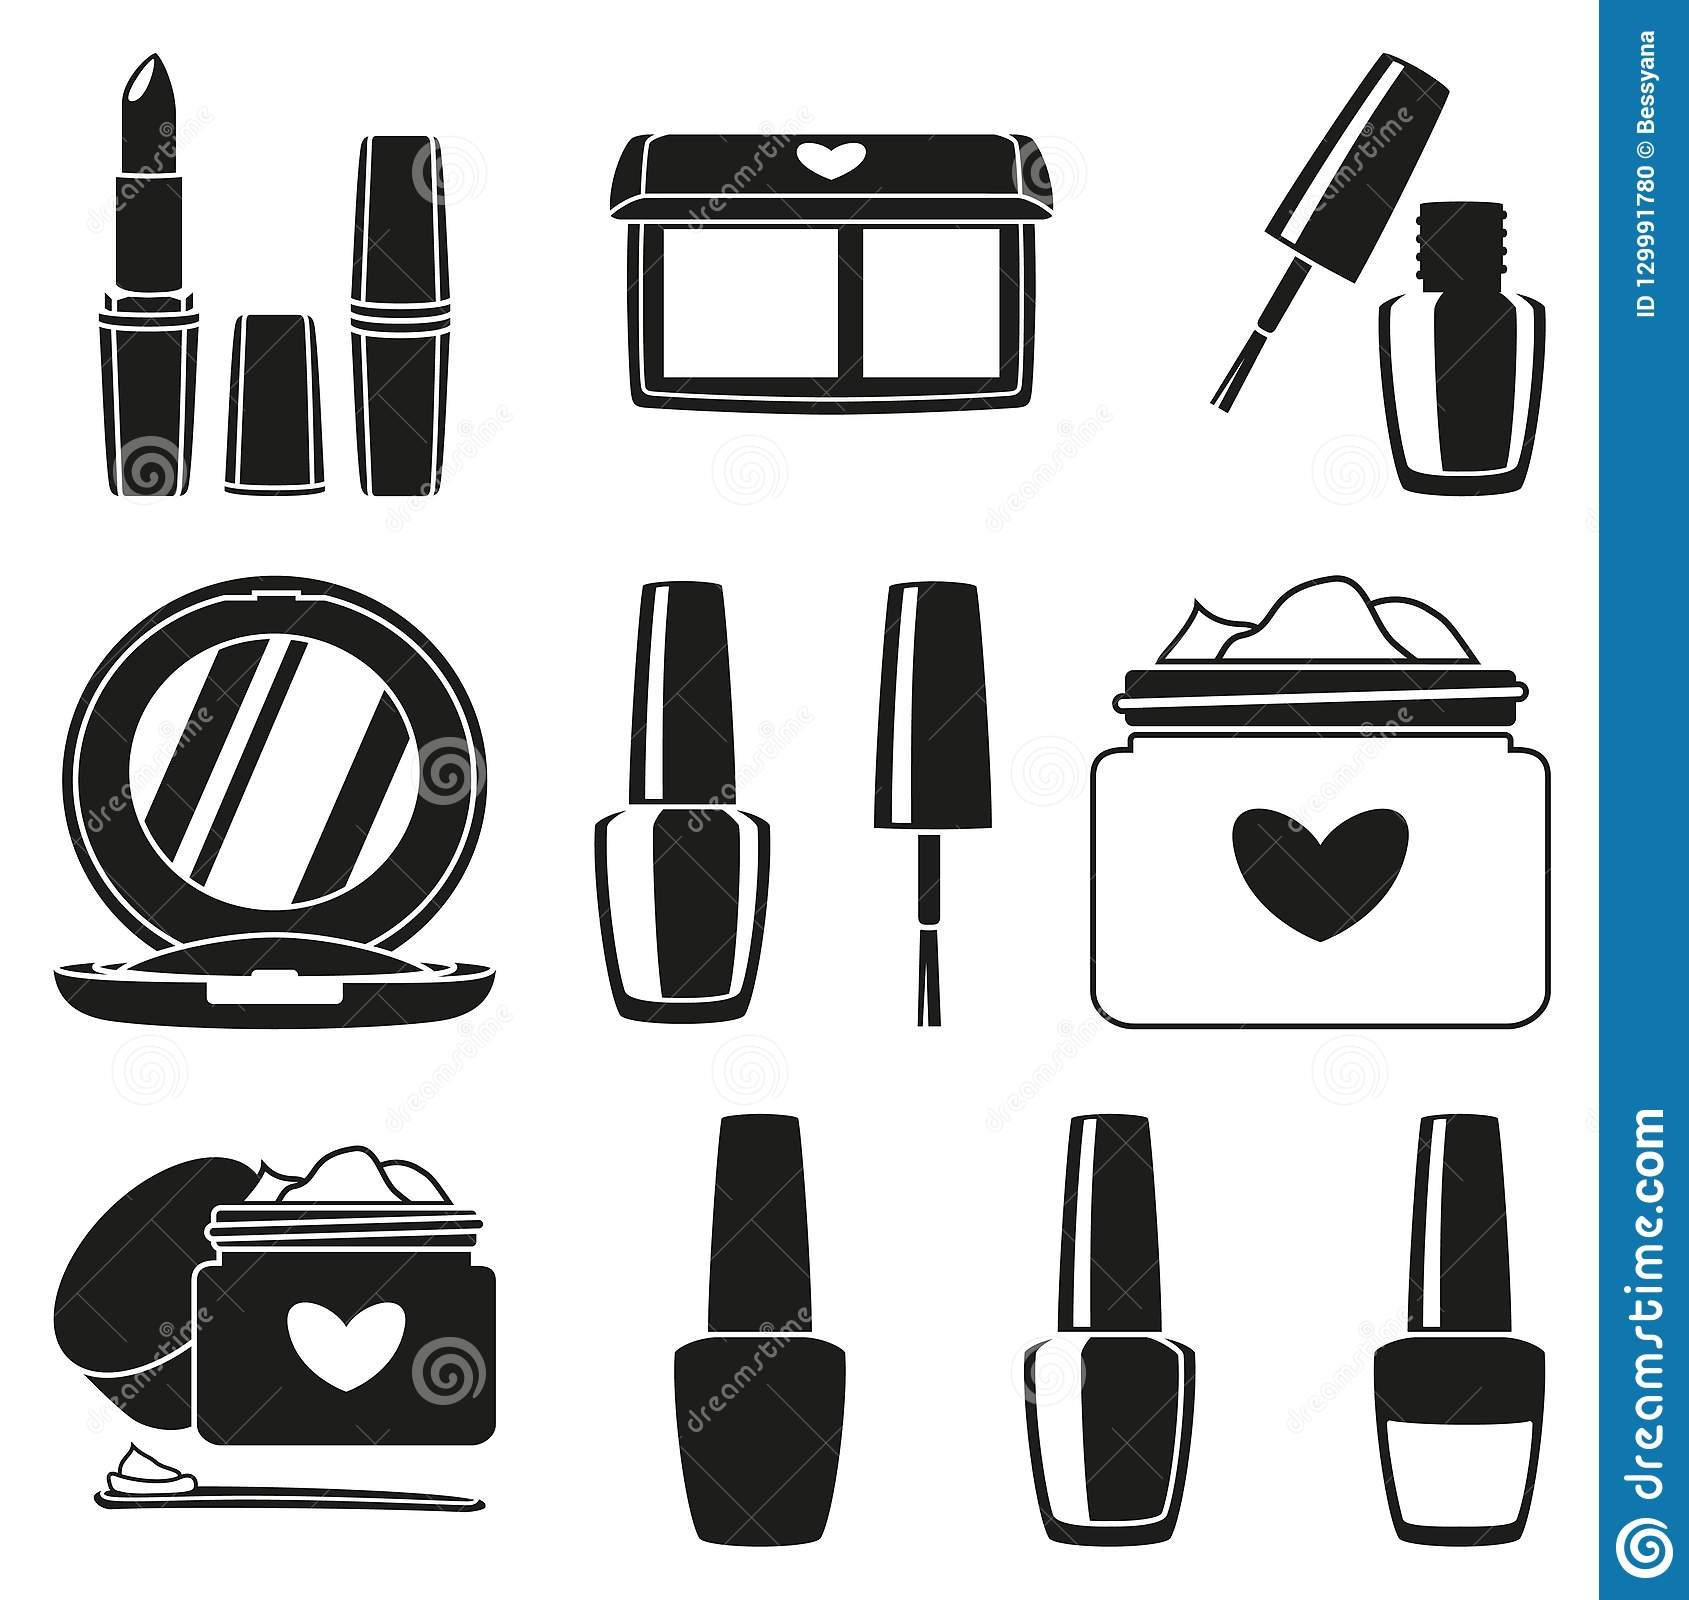 Cosmetic objects for women gifts. Beauty themed vector illustration for icon, logo, stamp, label, sticker, badge, gift card or certificate decoration